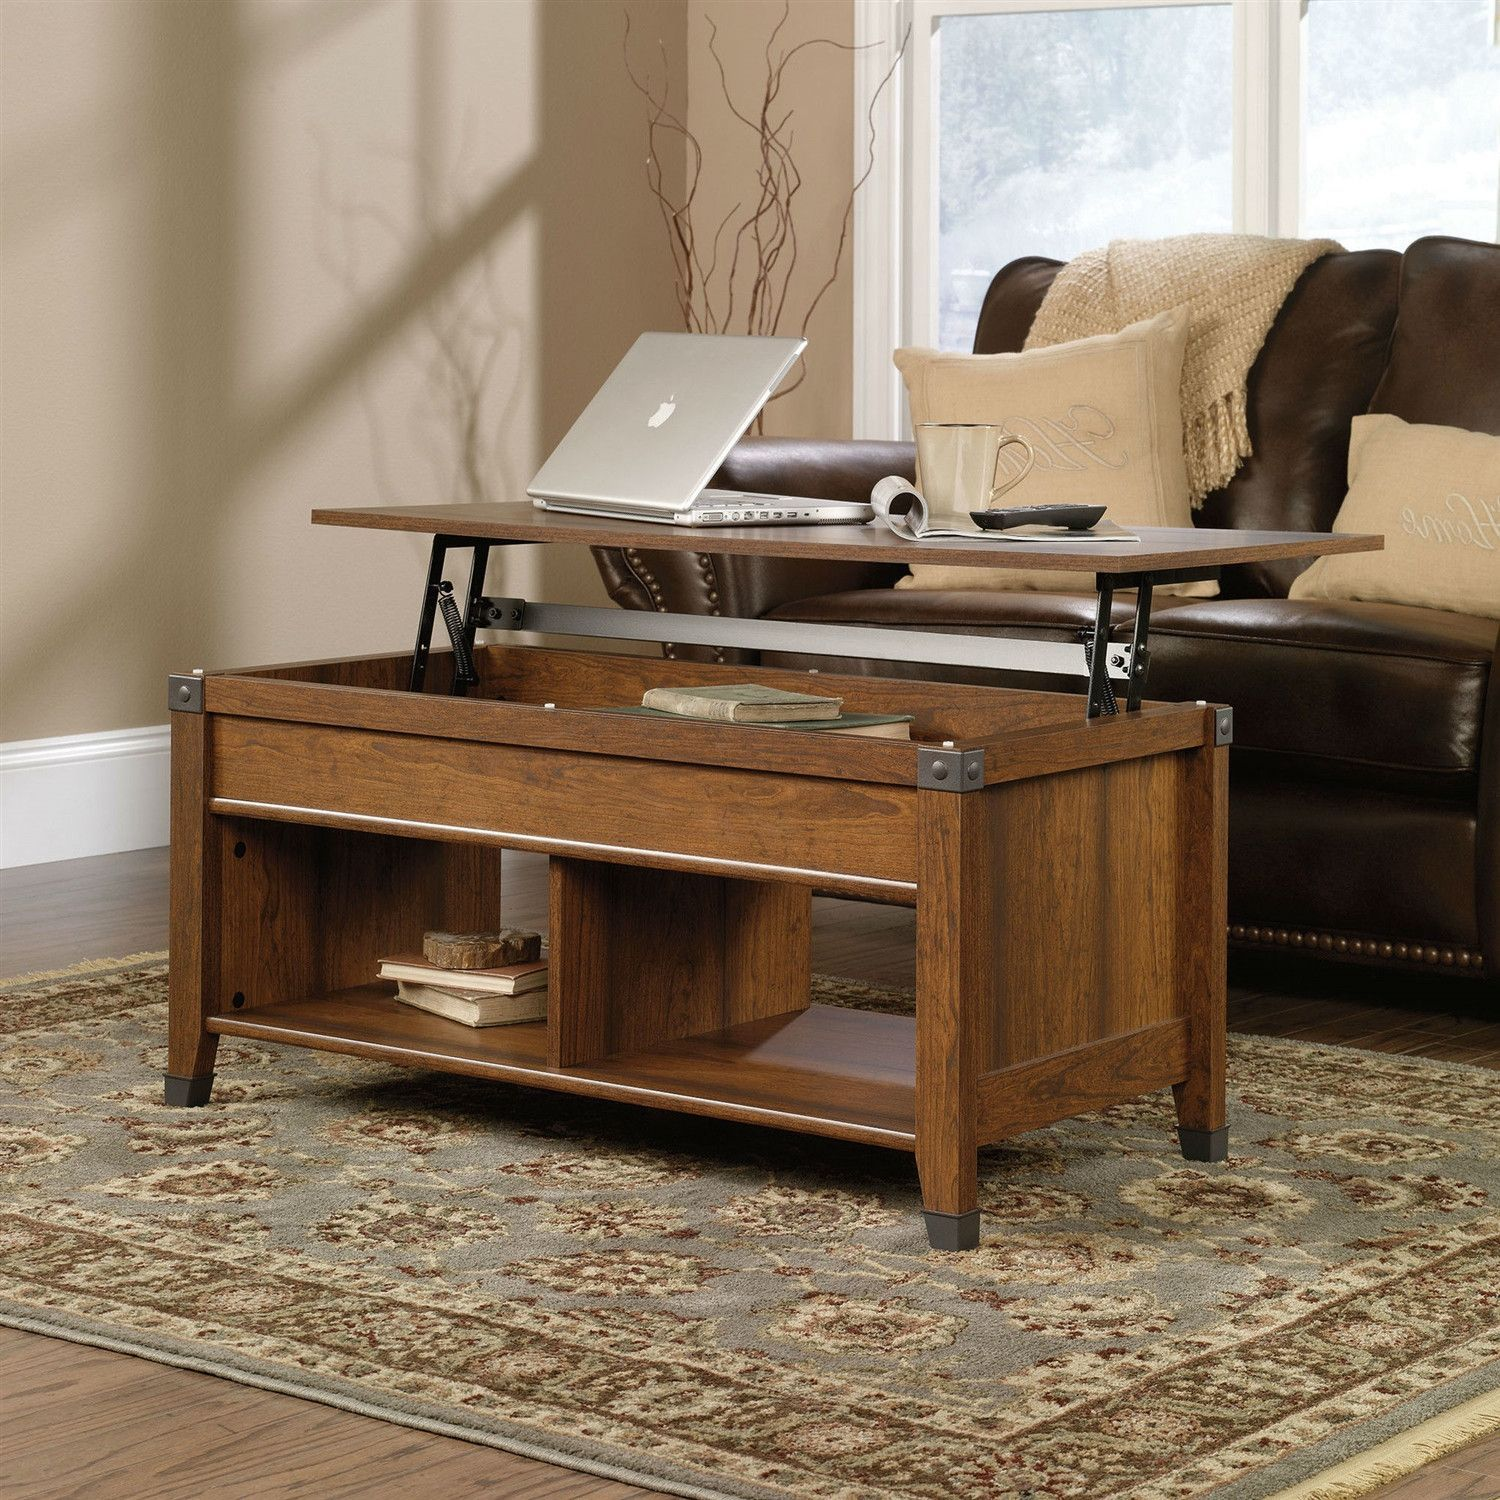 Lift Table Coffee Table: Lift-Top Coffee Table In Cherry Wood Finish